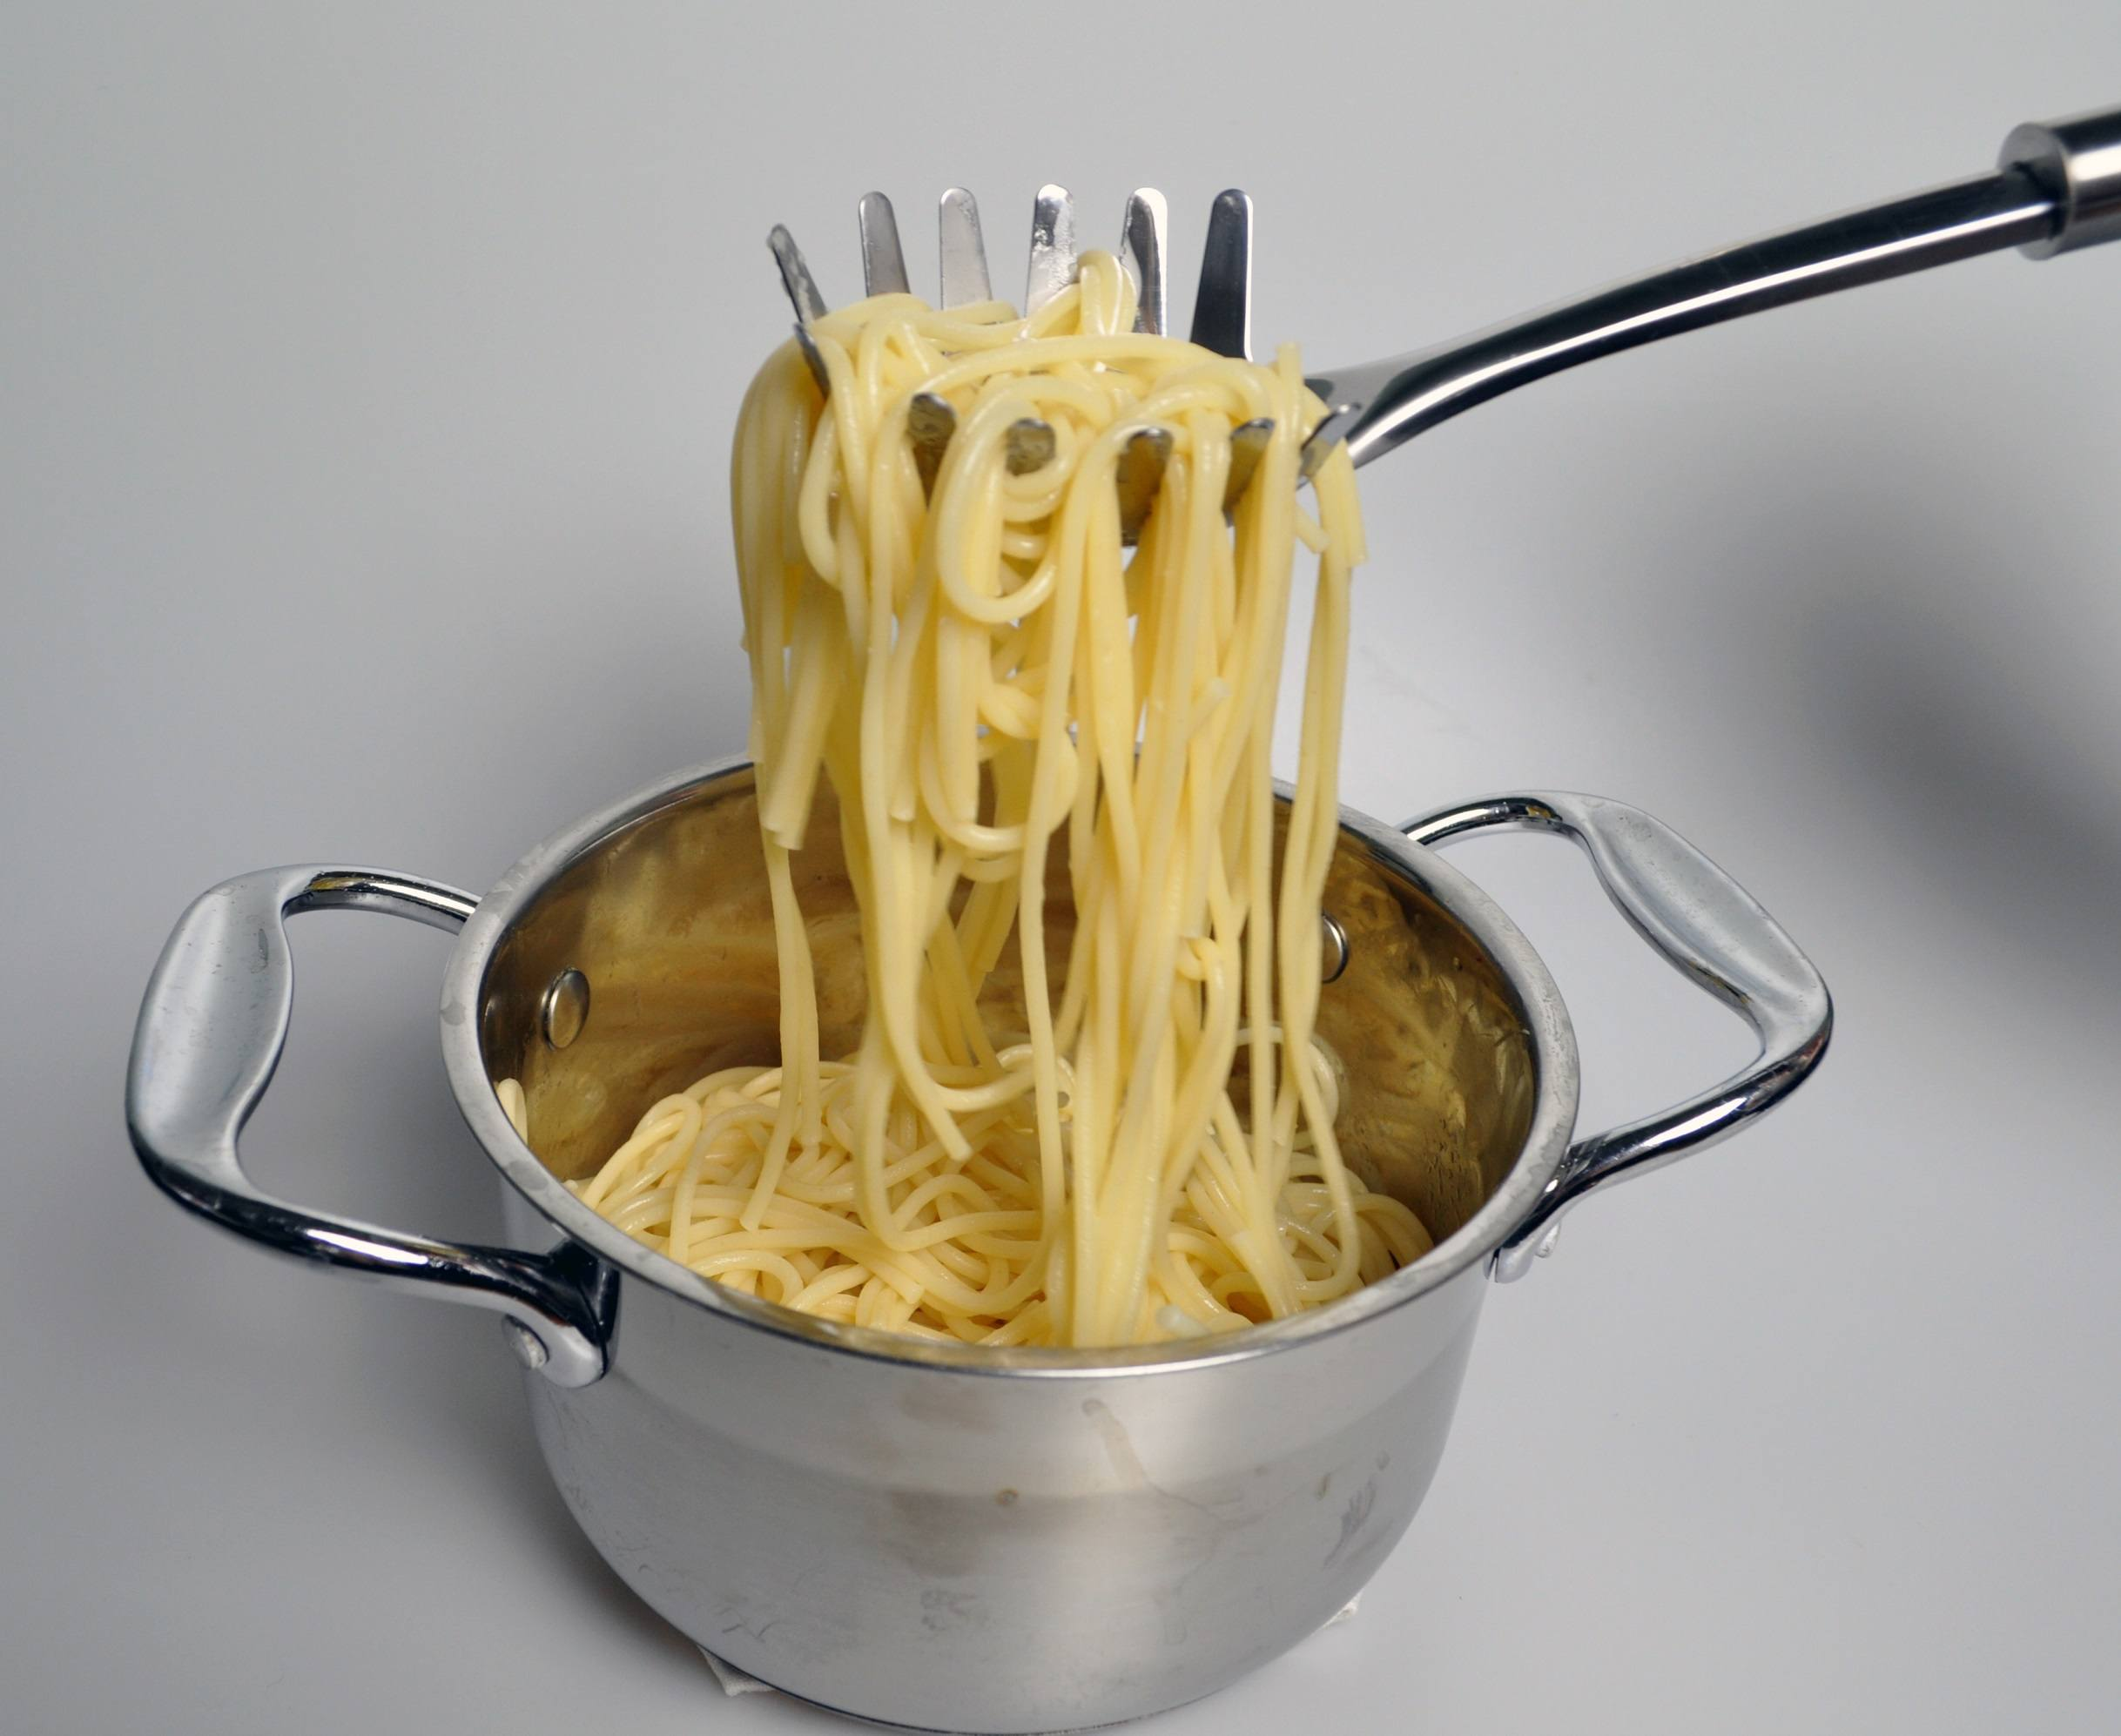 boiled spaghetti in a saucepan, in a spoon for spaghetti